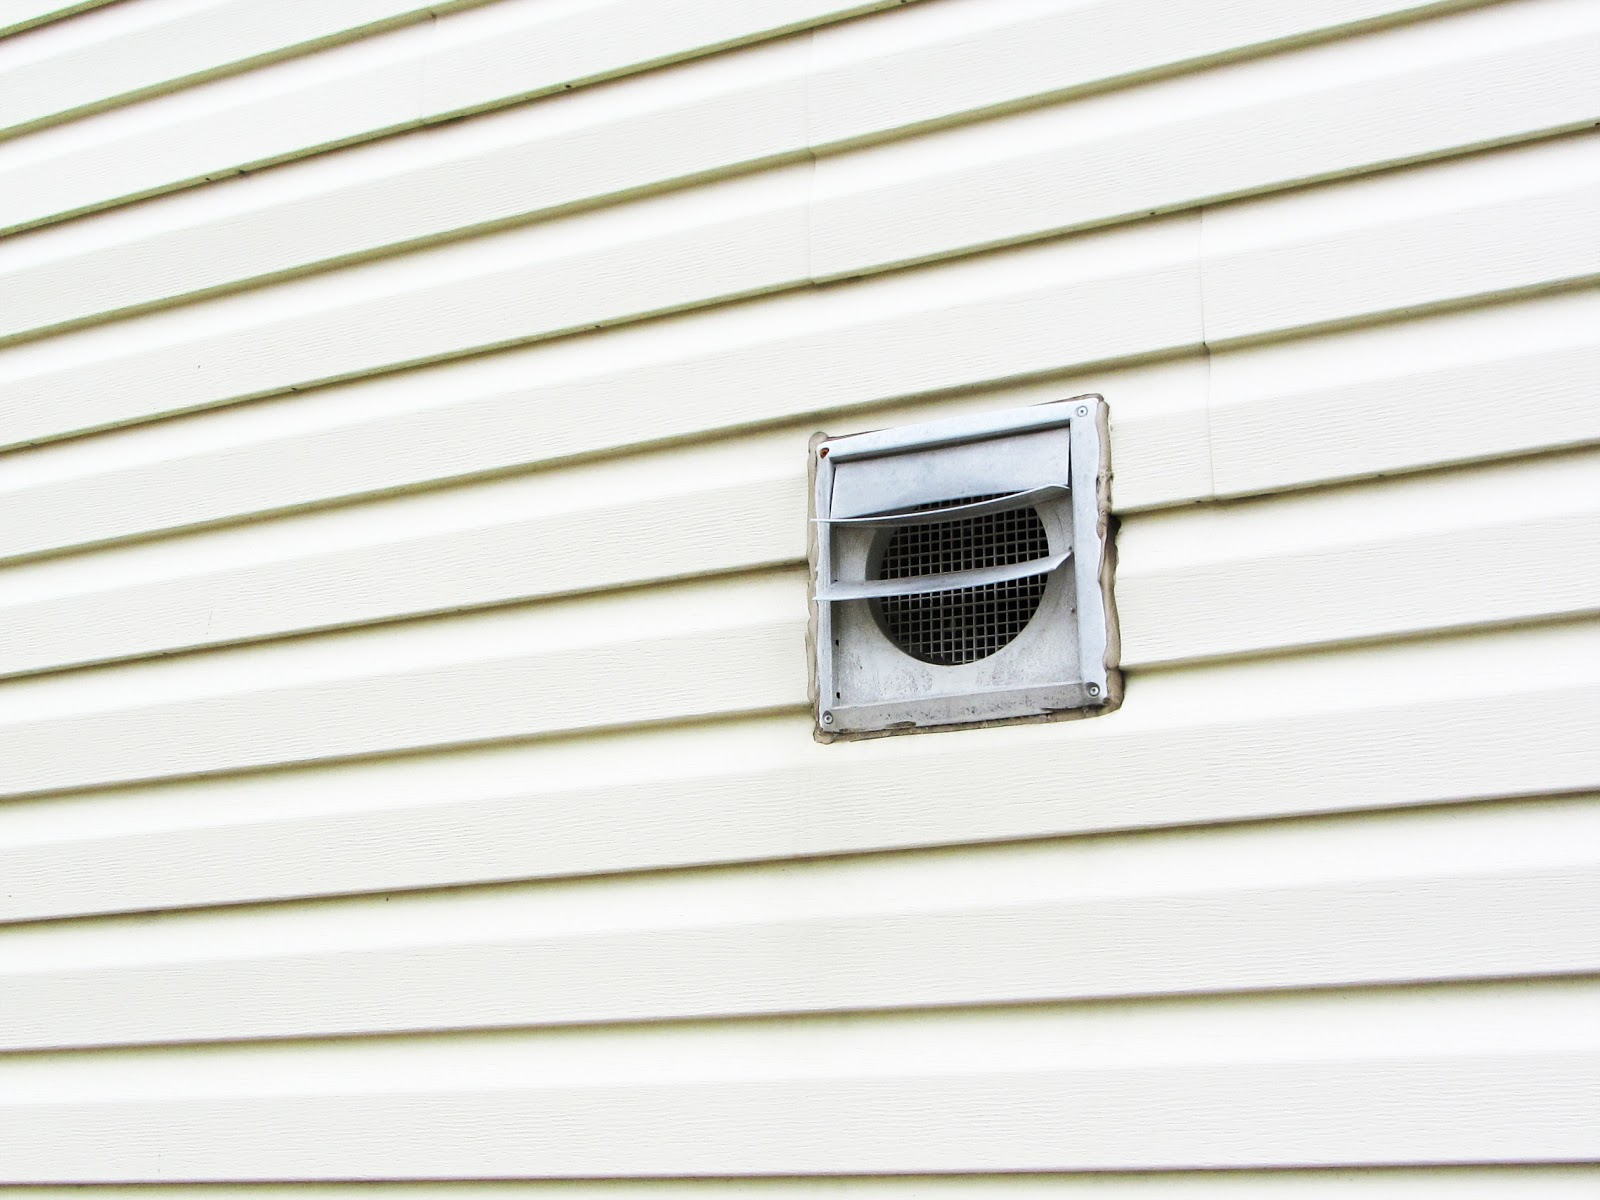 5 Clothes Dryer Exhaust Vent